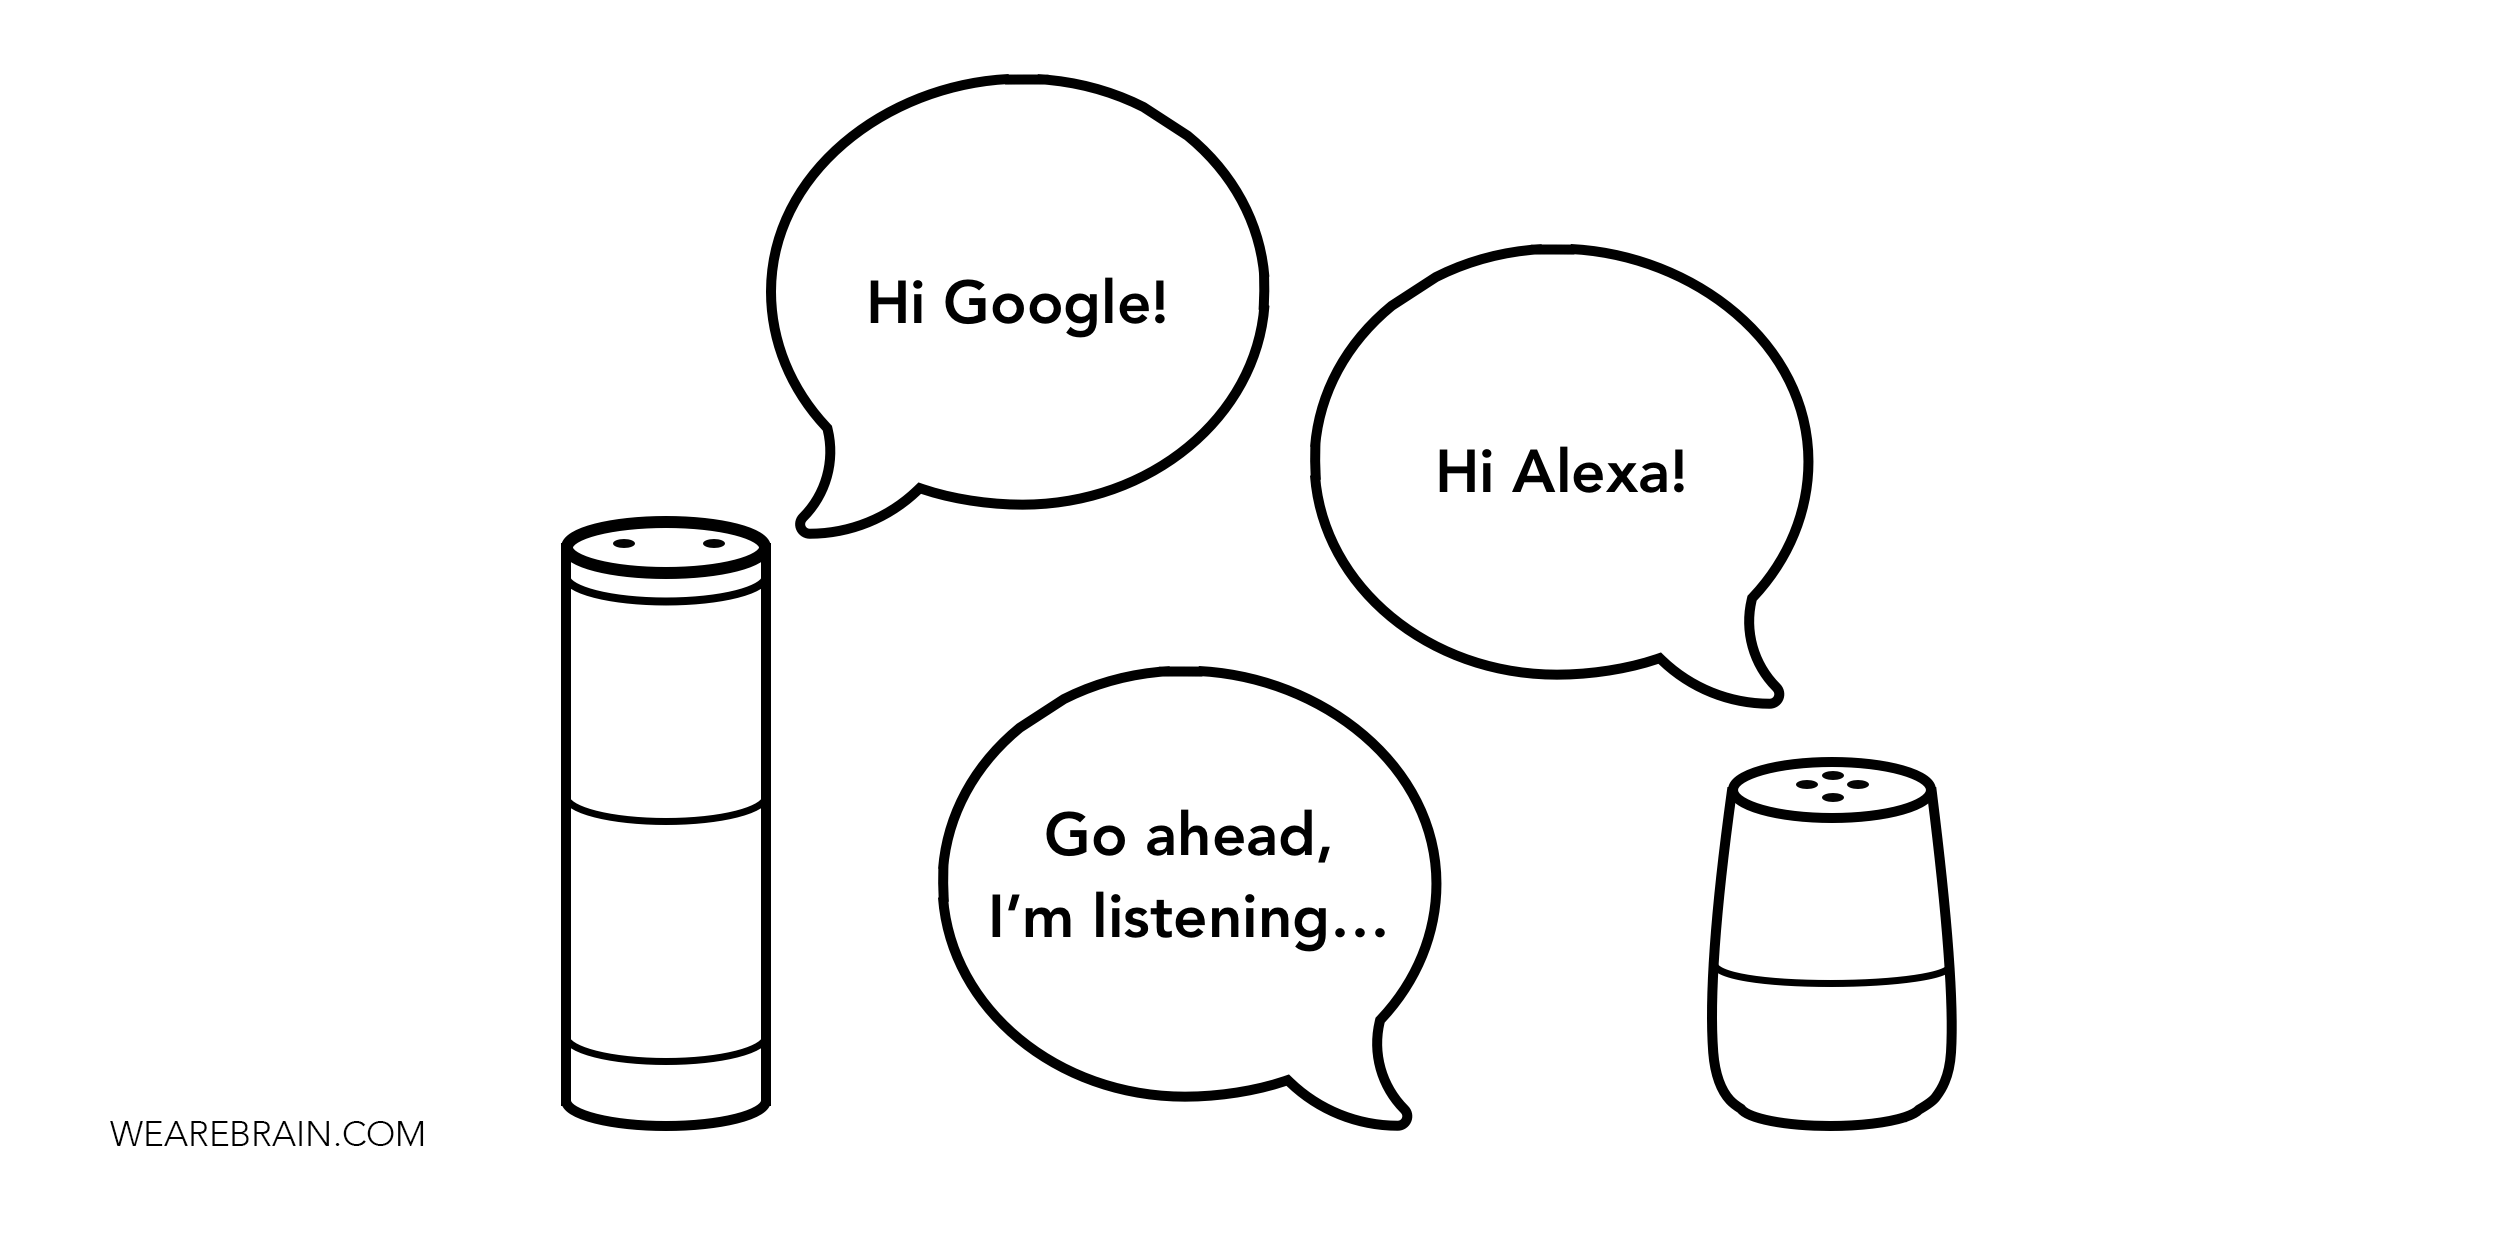 illustration of a google and alexa speaker talking to each other